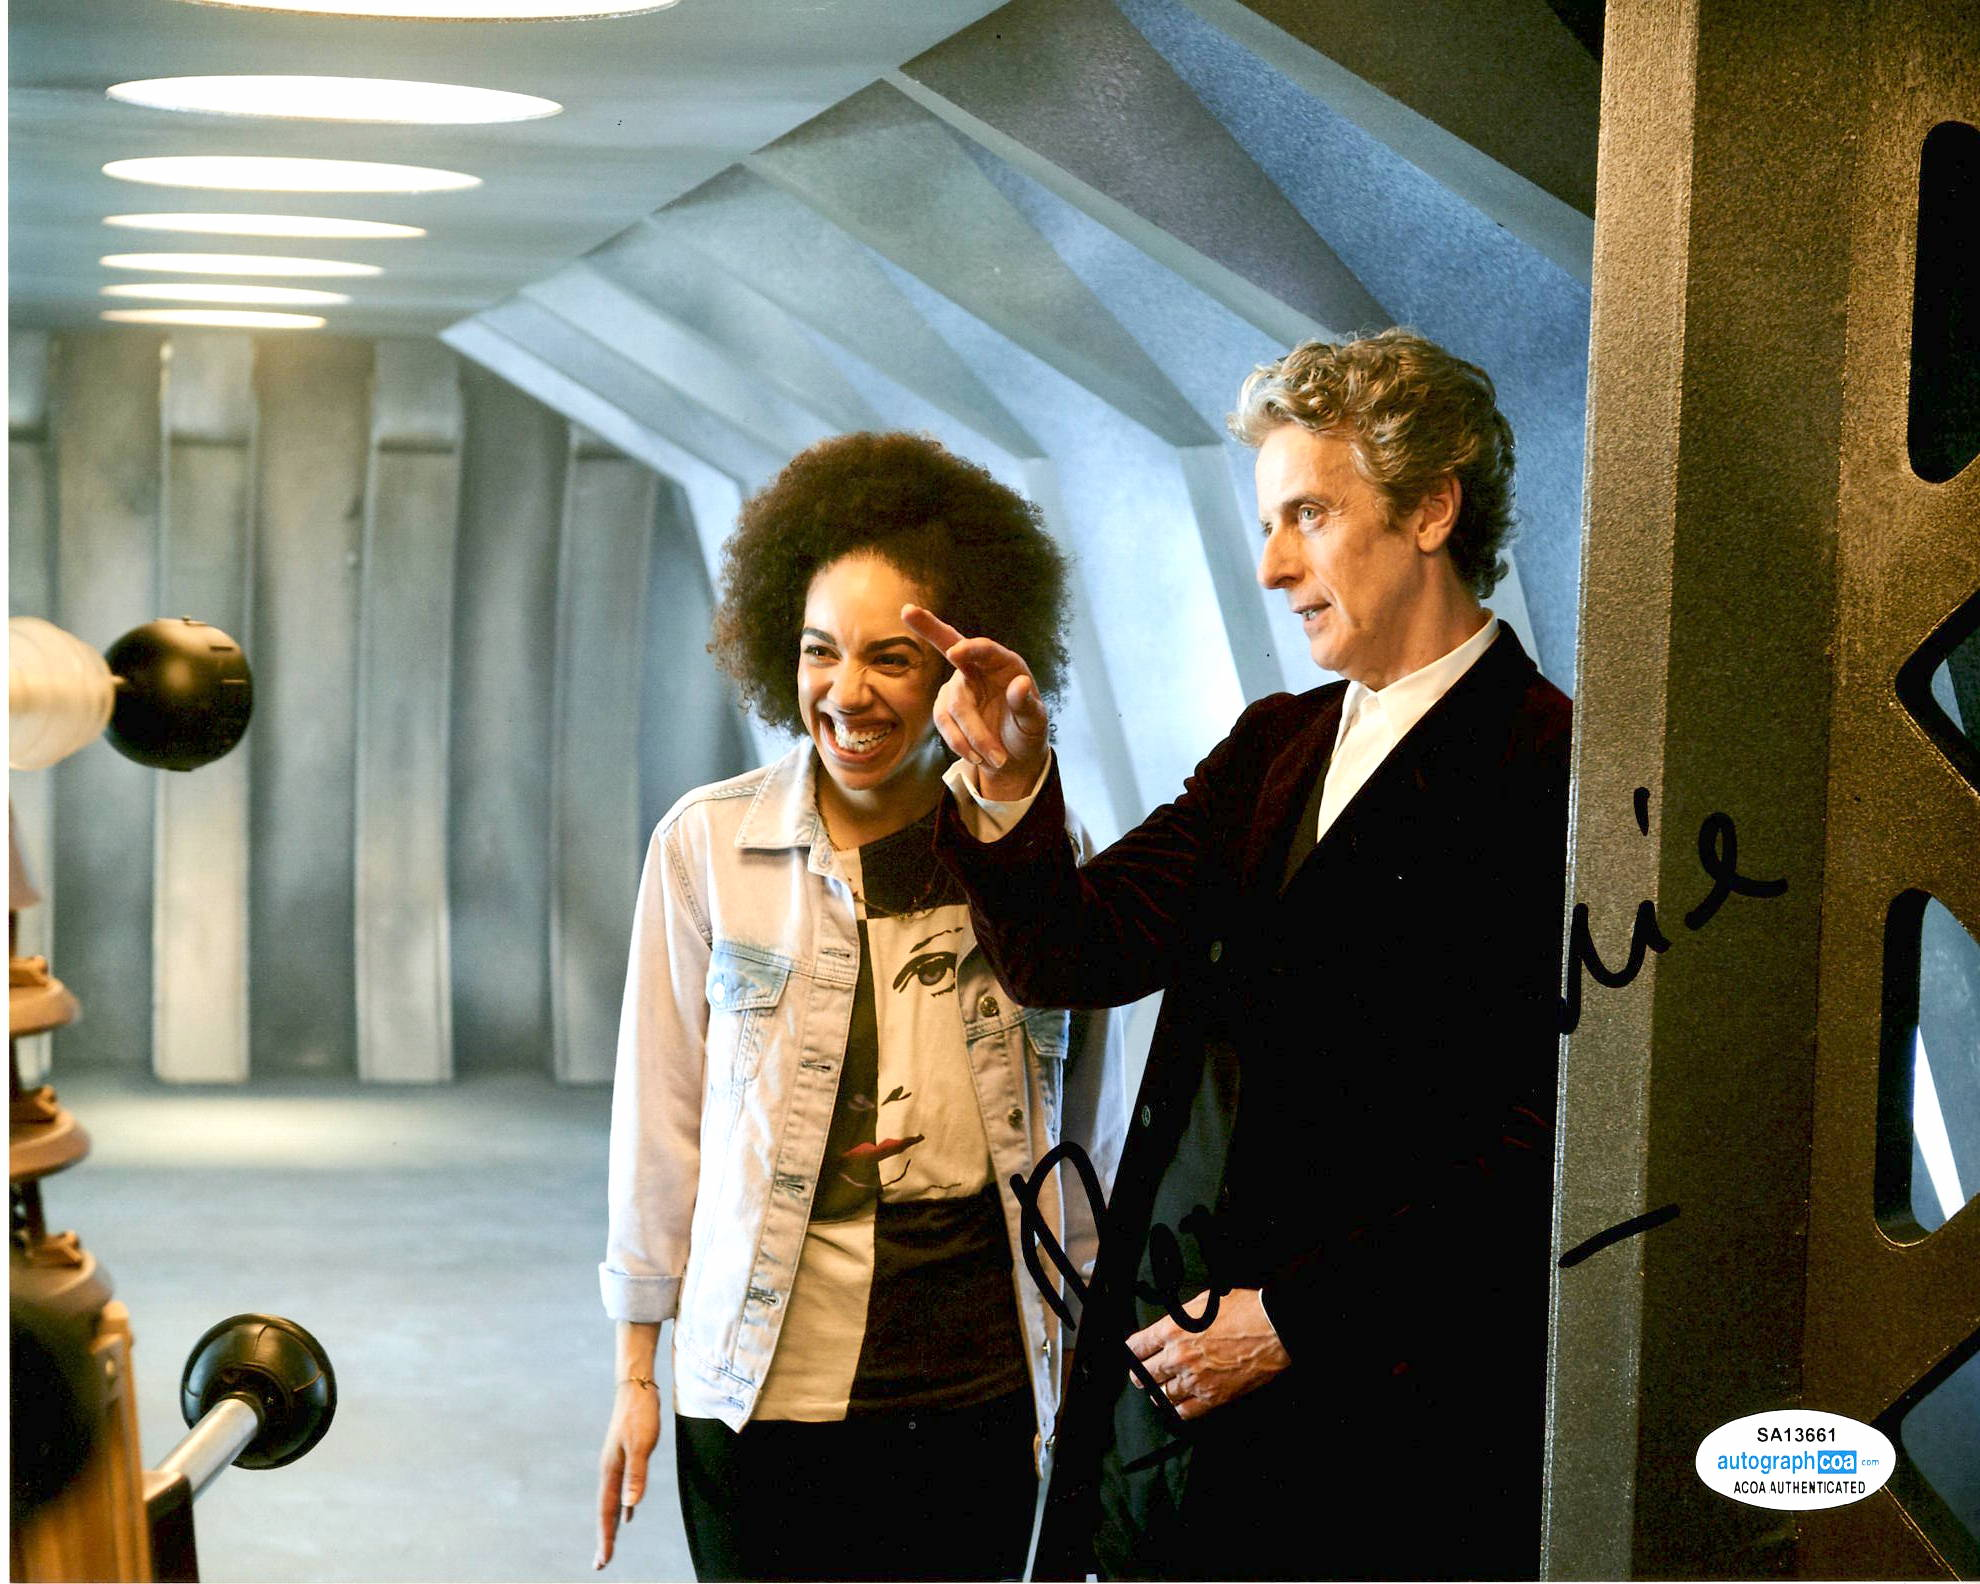 Pearl Mackie Doctor Who Signed Autograph 8x10 Photo - Outlaw Hobbies Authentic Autographs